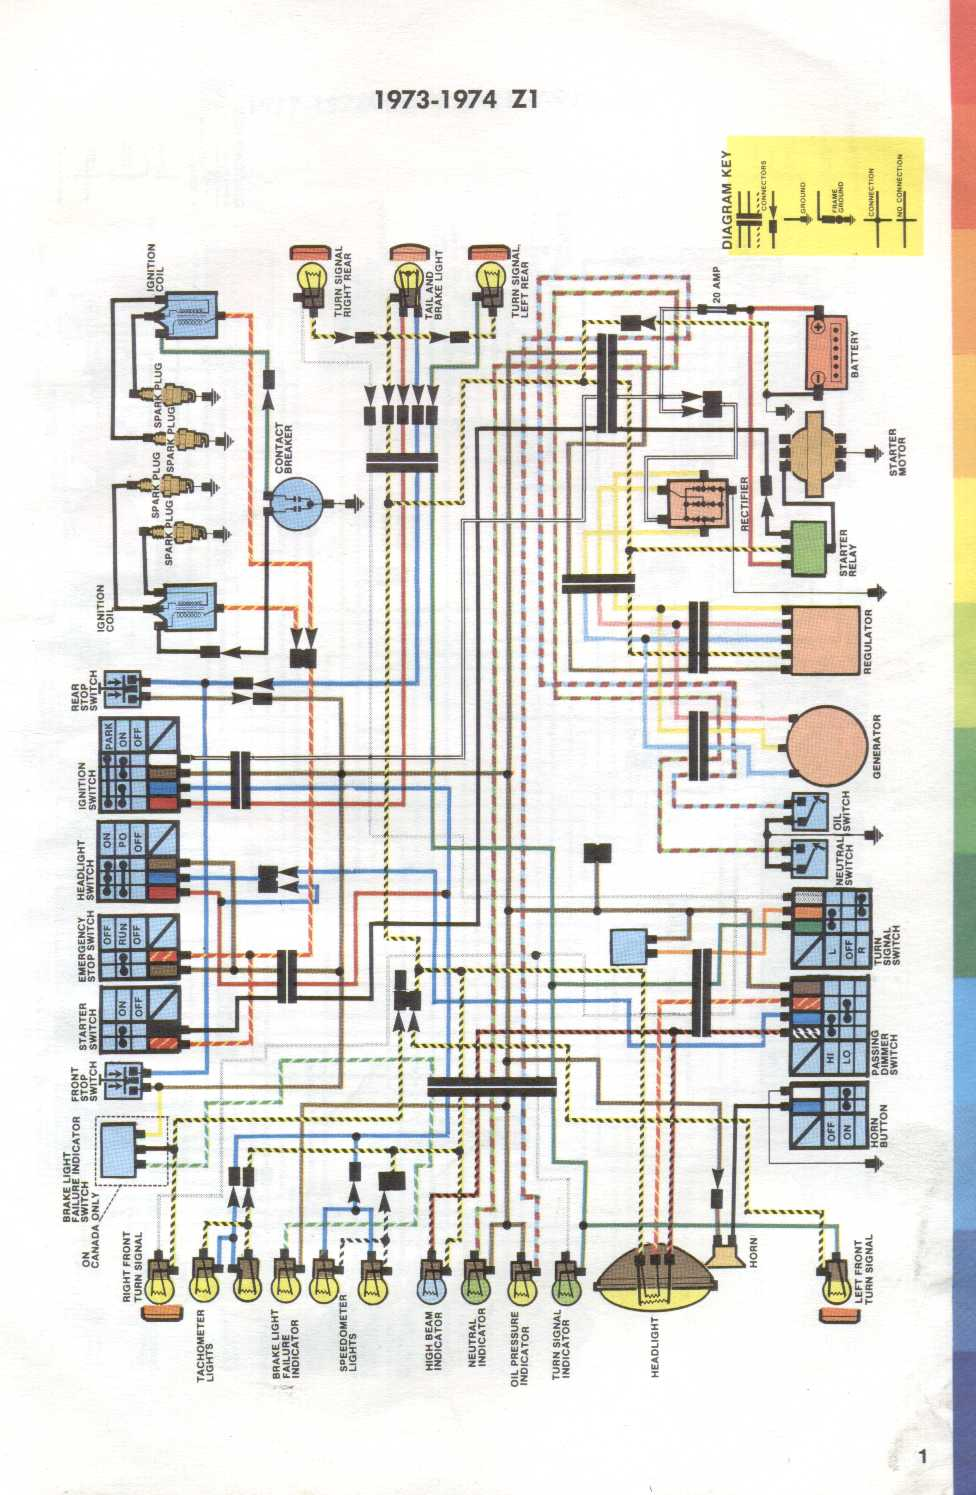 hight resolution of z1 wiring diagram wiring diagram operations z1 wiring harness diagram